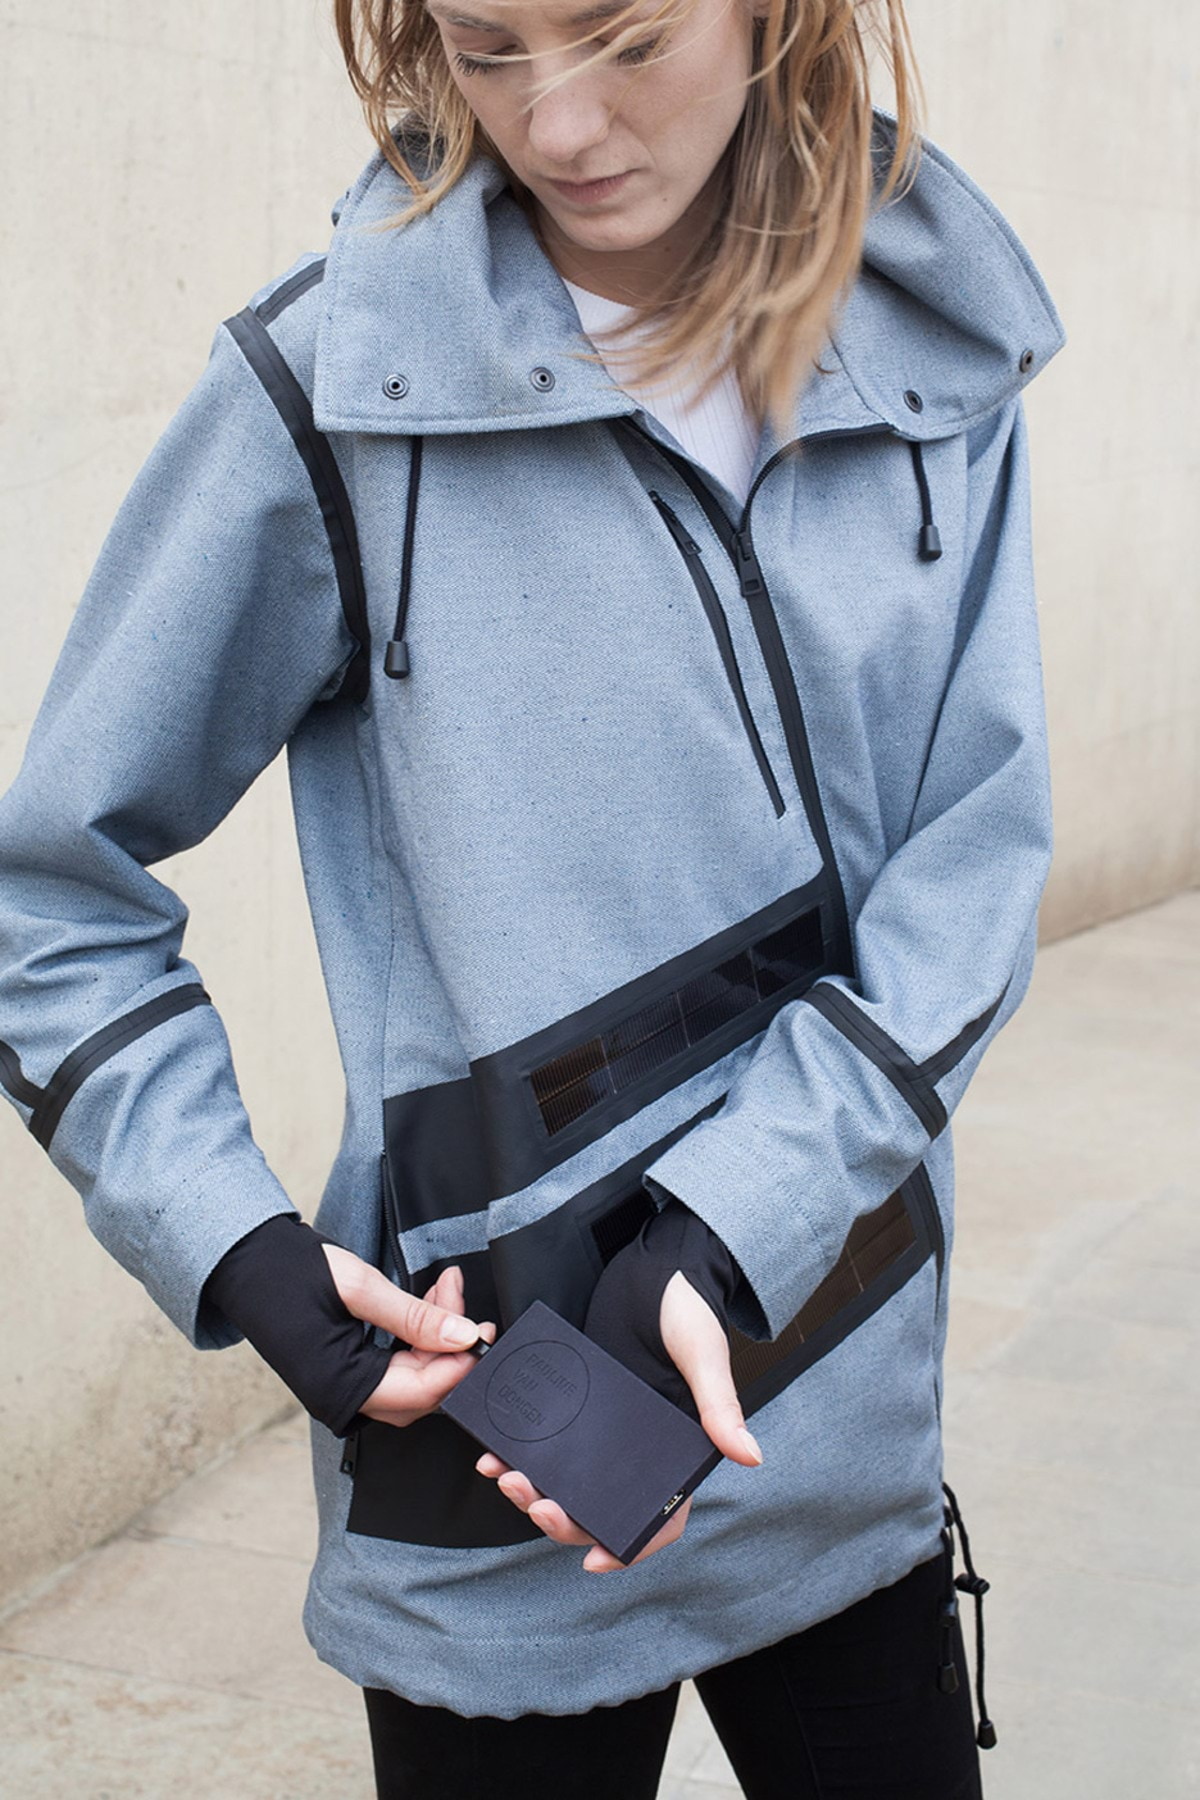 solar-windbreaker-pauline-van-dongen-clothing-the-netherlands_dezeen_936_7